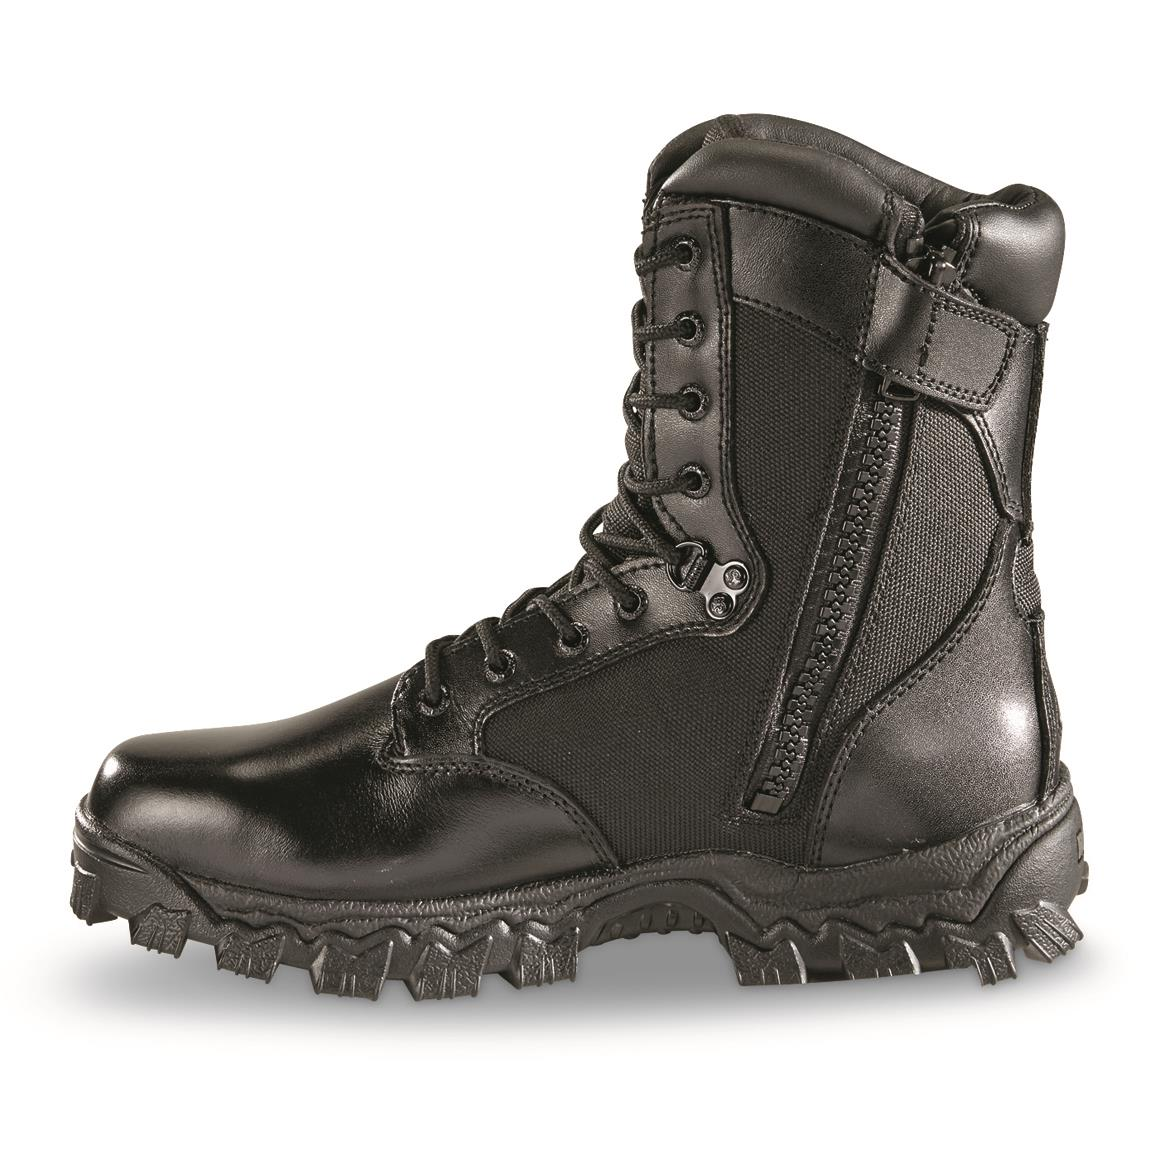 Rocky 100% waterproof construction for powder-dry feet